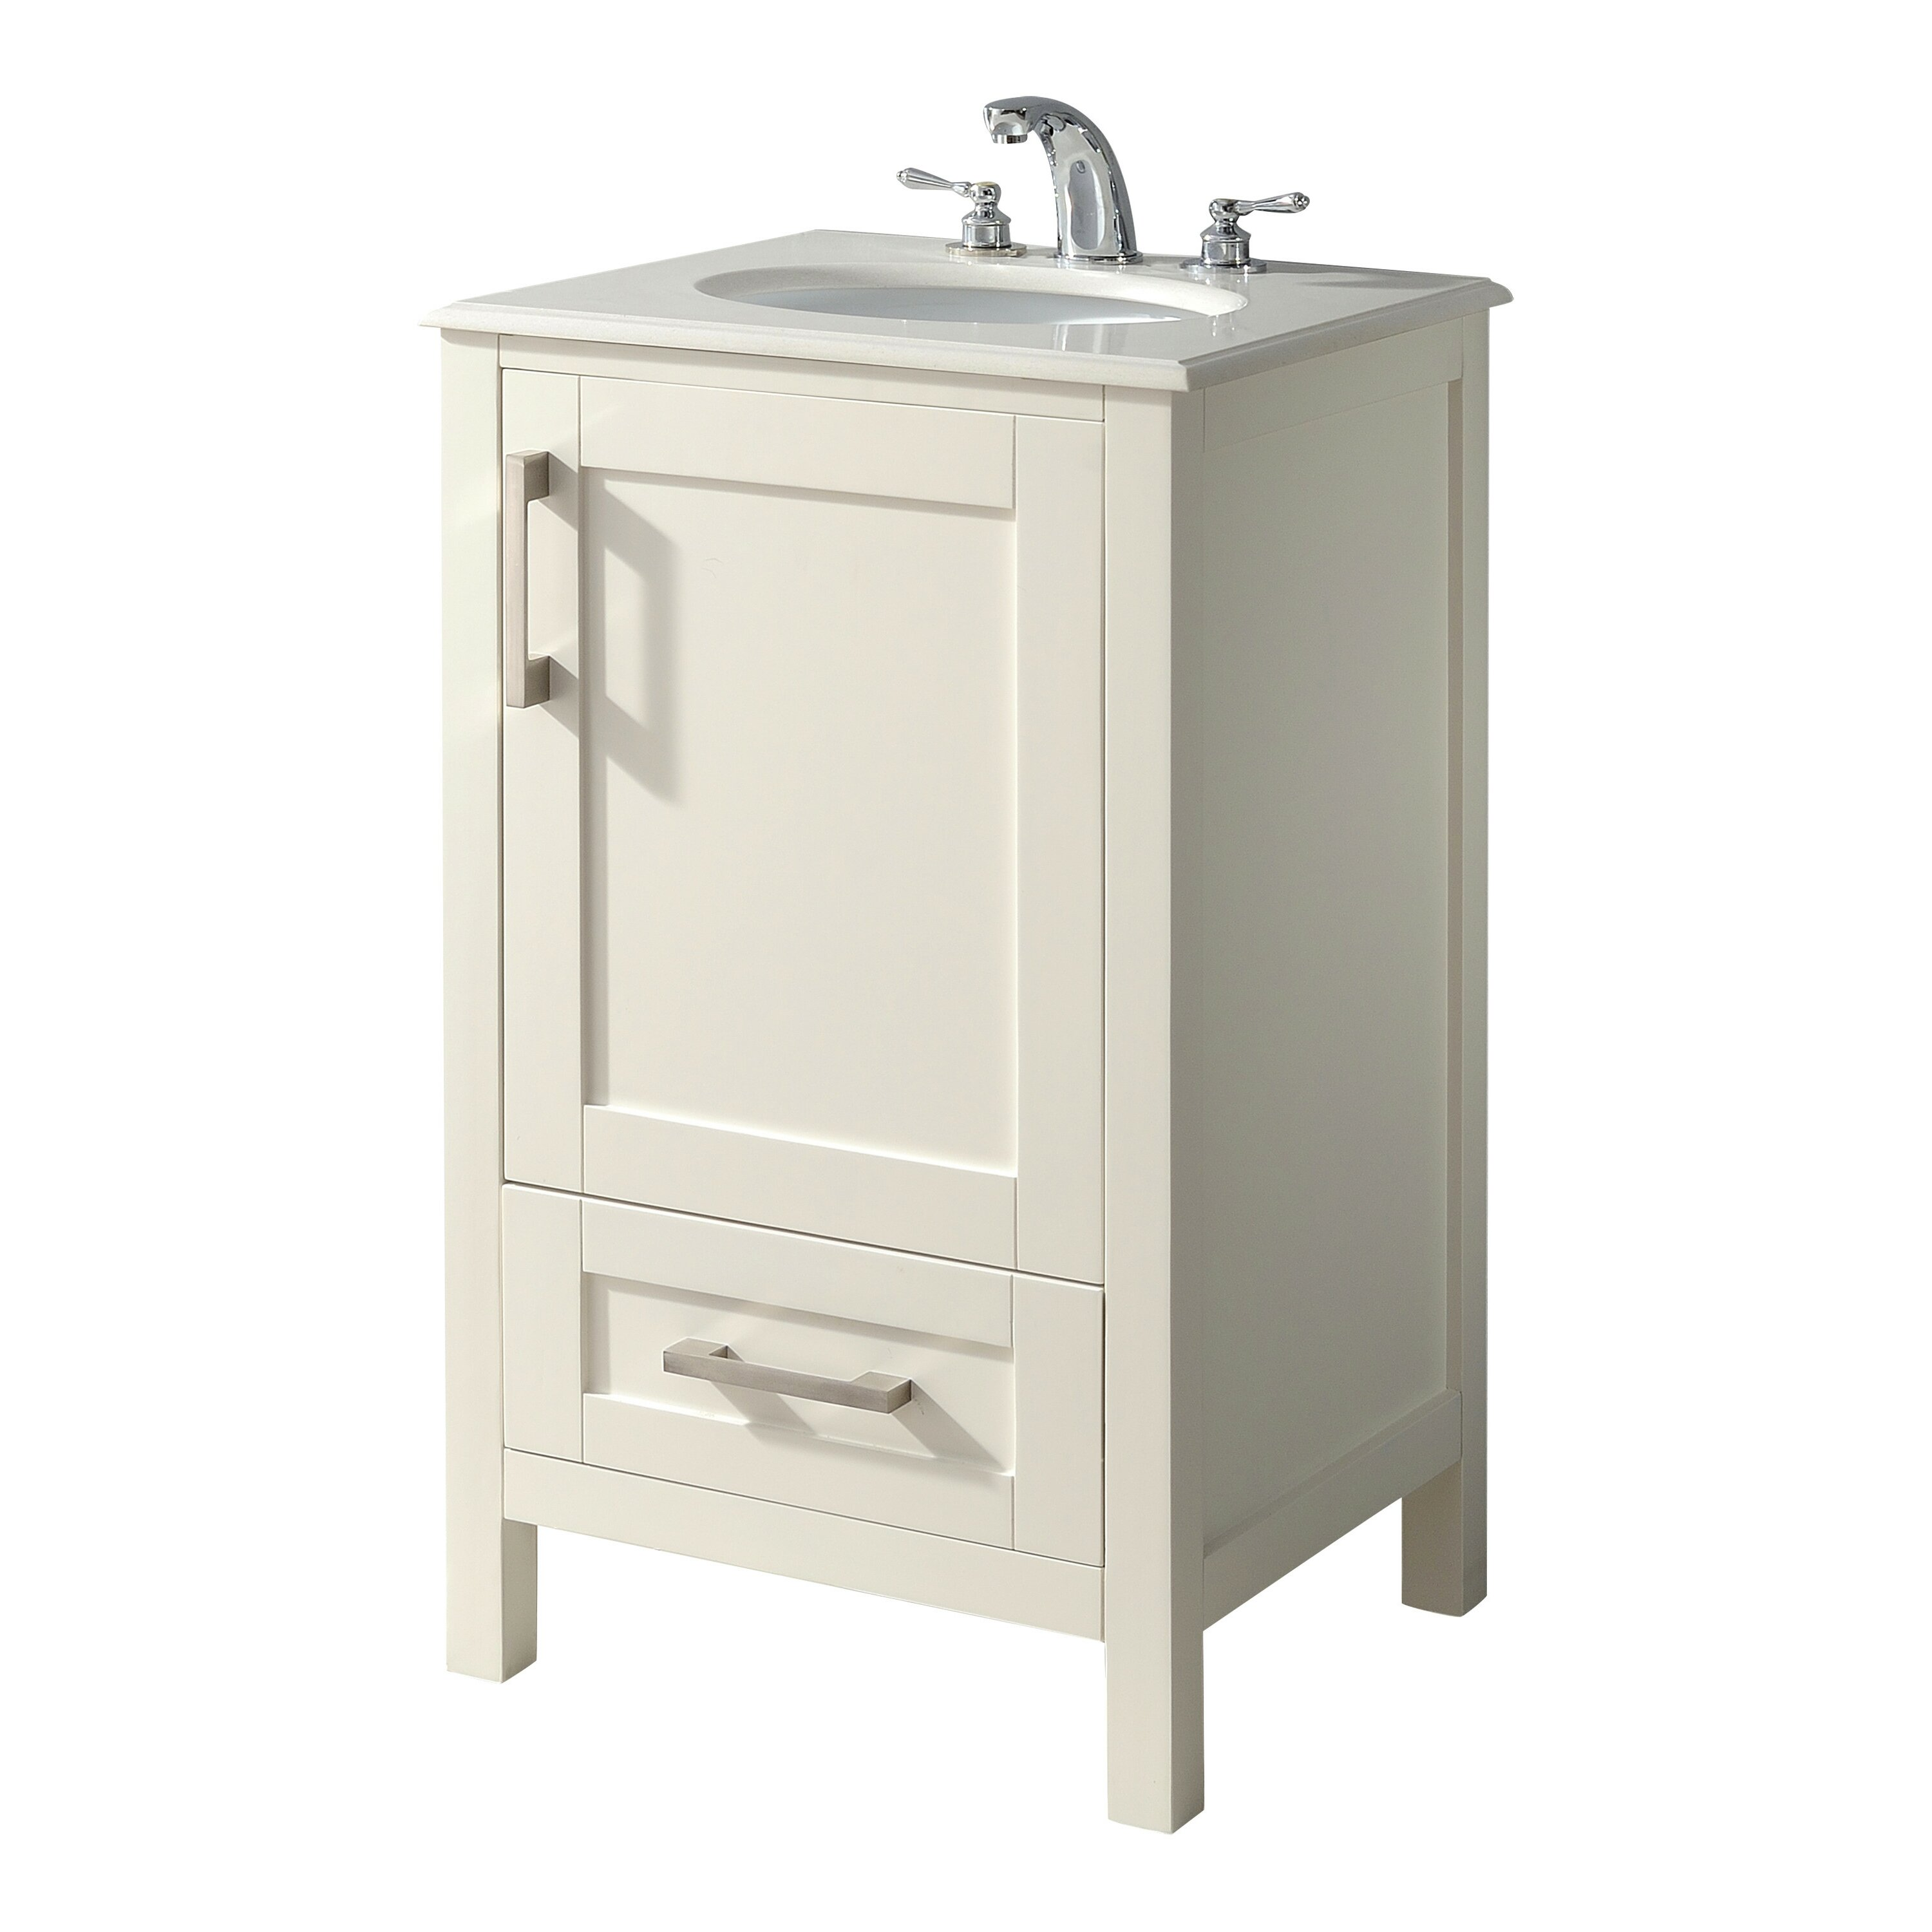 20 Vanity Cabinet Simpli Home Westbridge 20 Single Bathroom Vanity Set Reviews